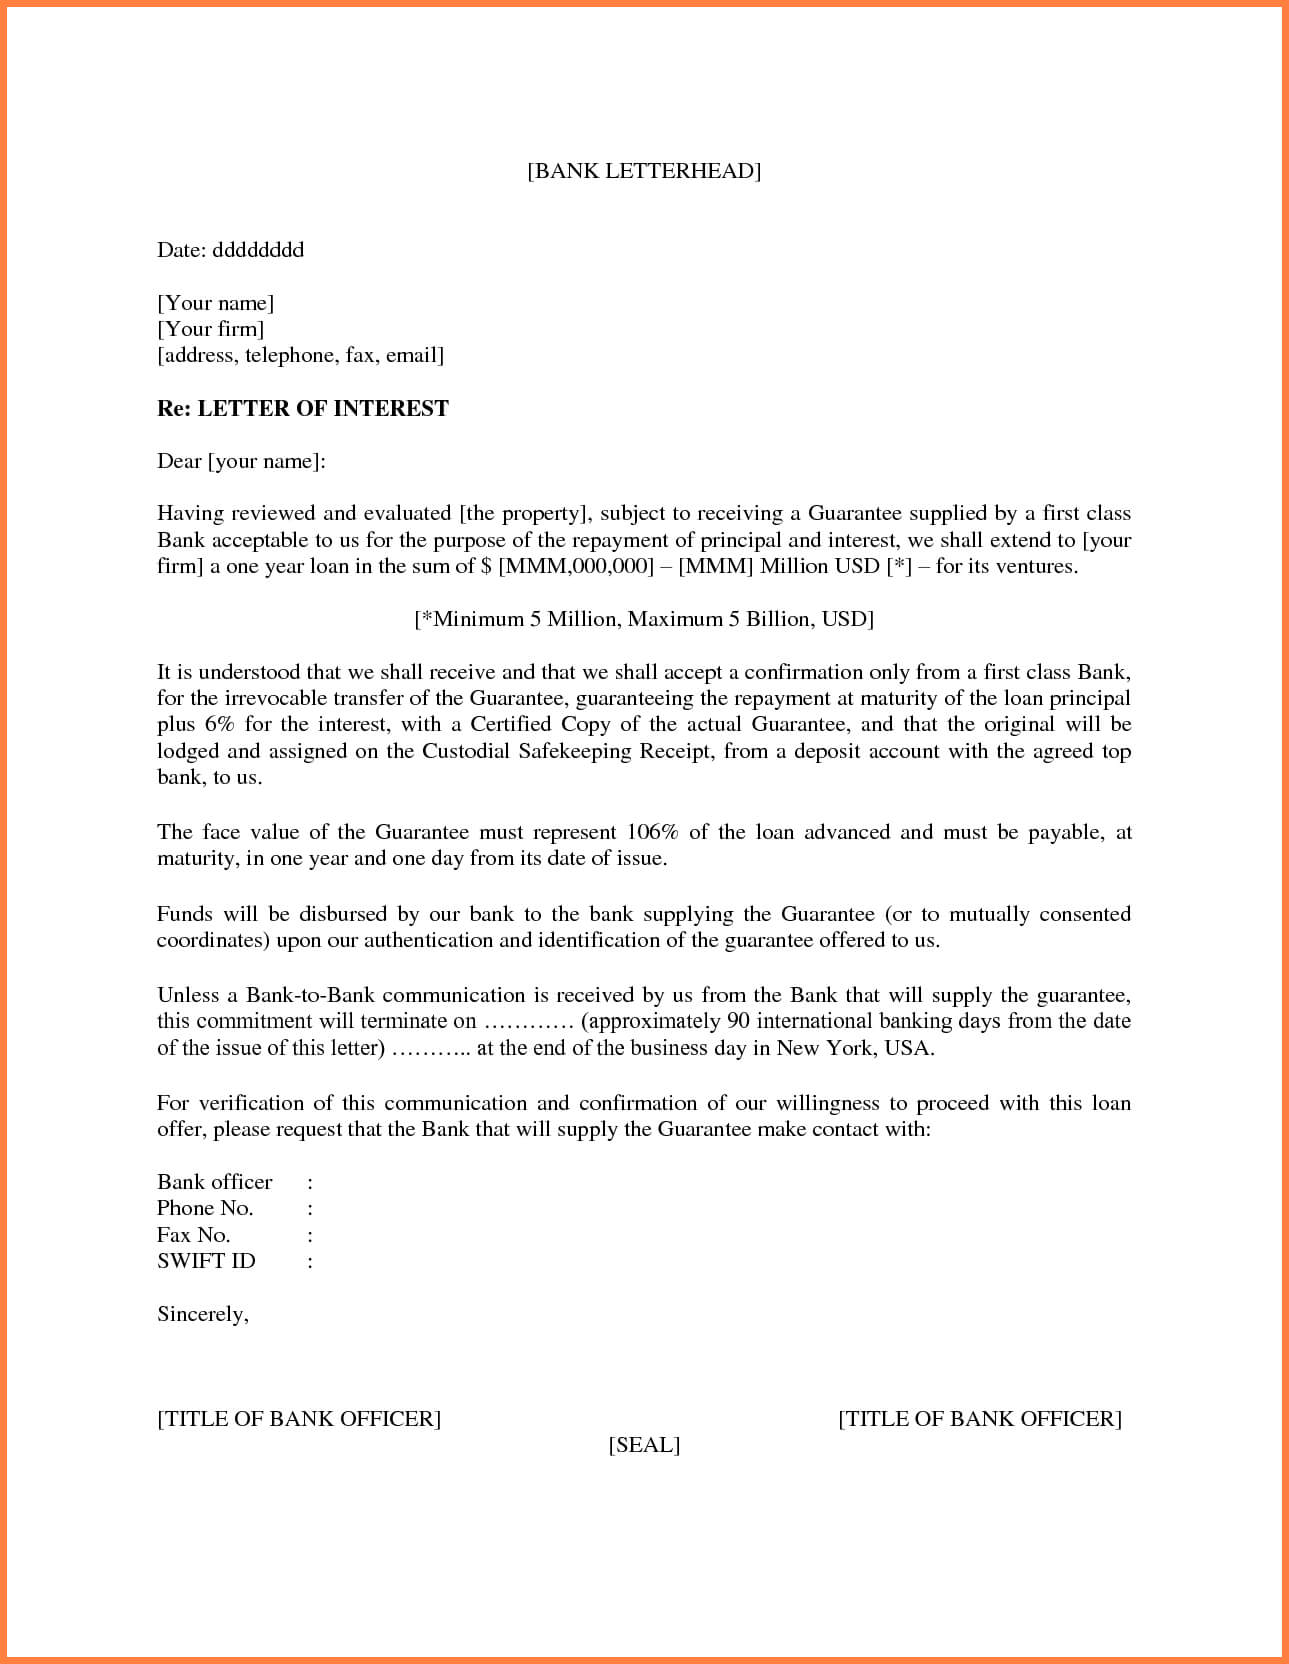 011 Letter Of Interest Template Microsoft Word Sweep11 Ideas With Letter Of Interest Template Microsoft Word